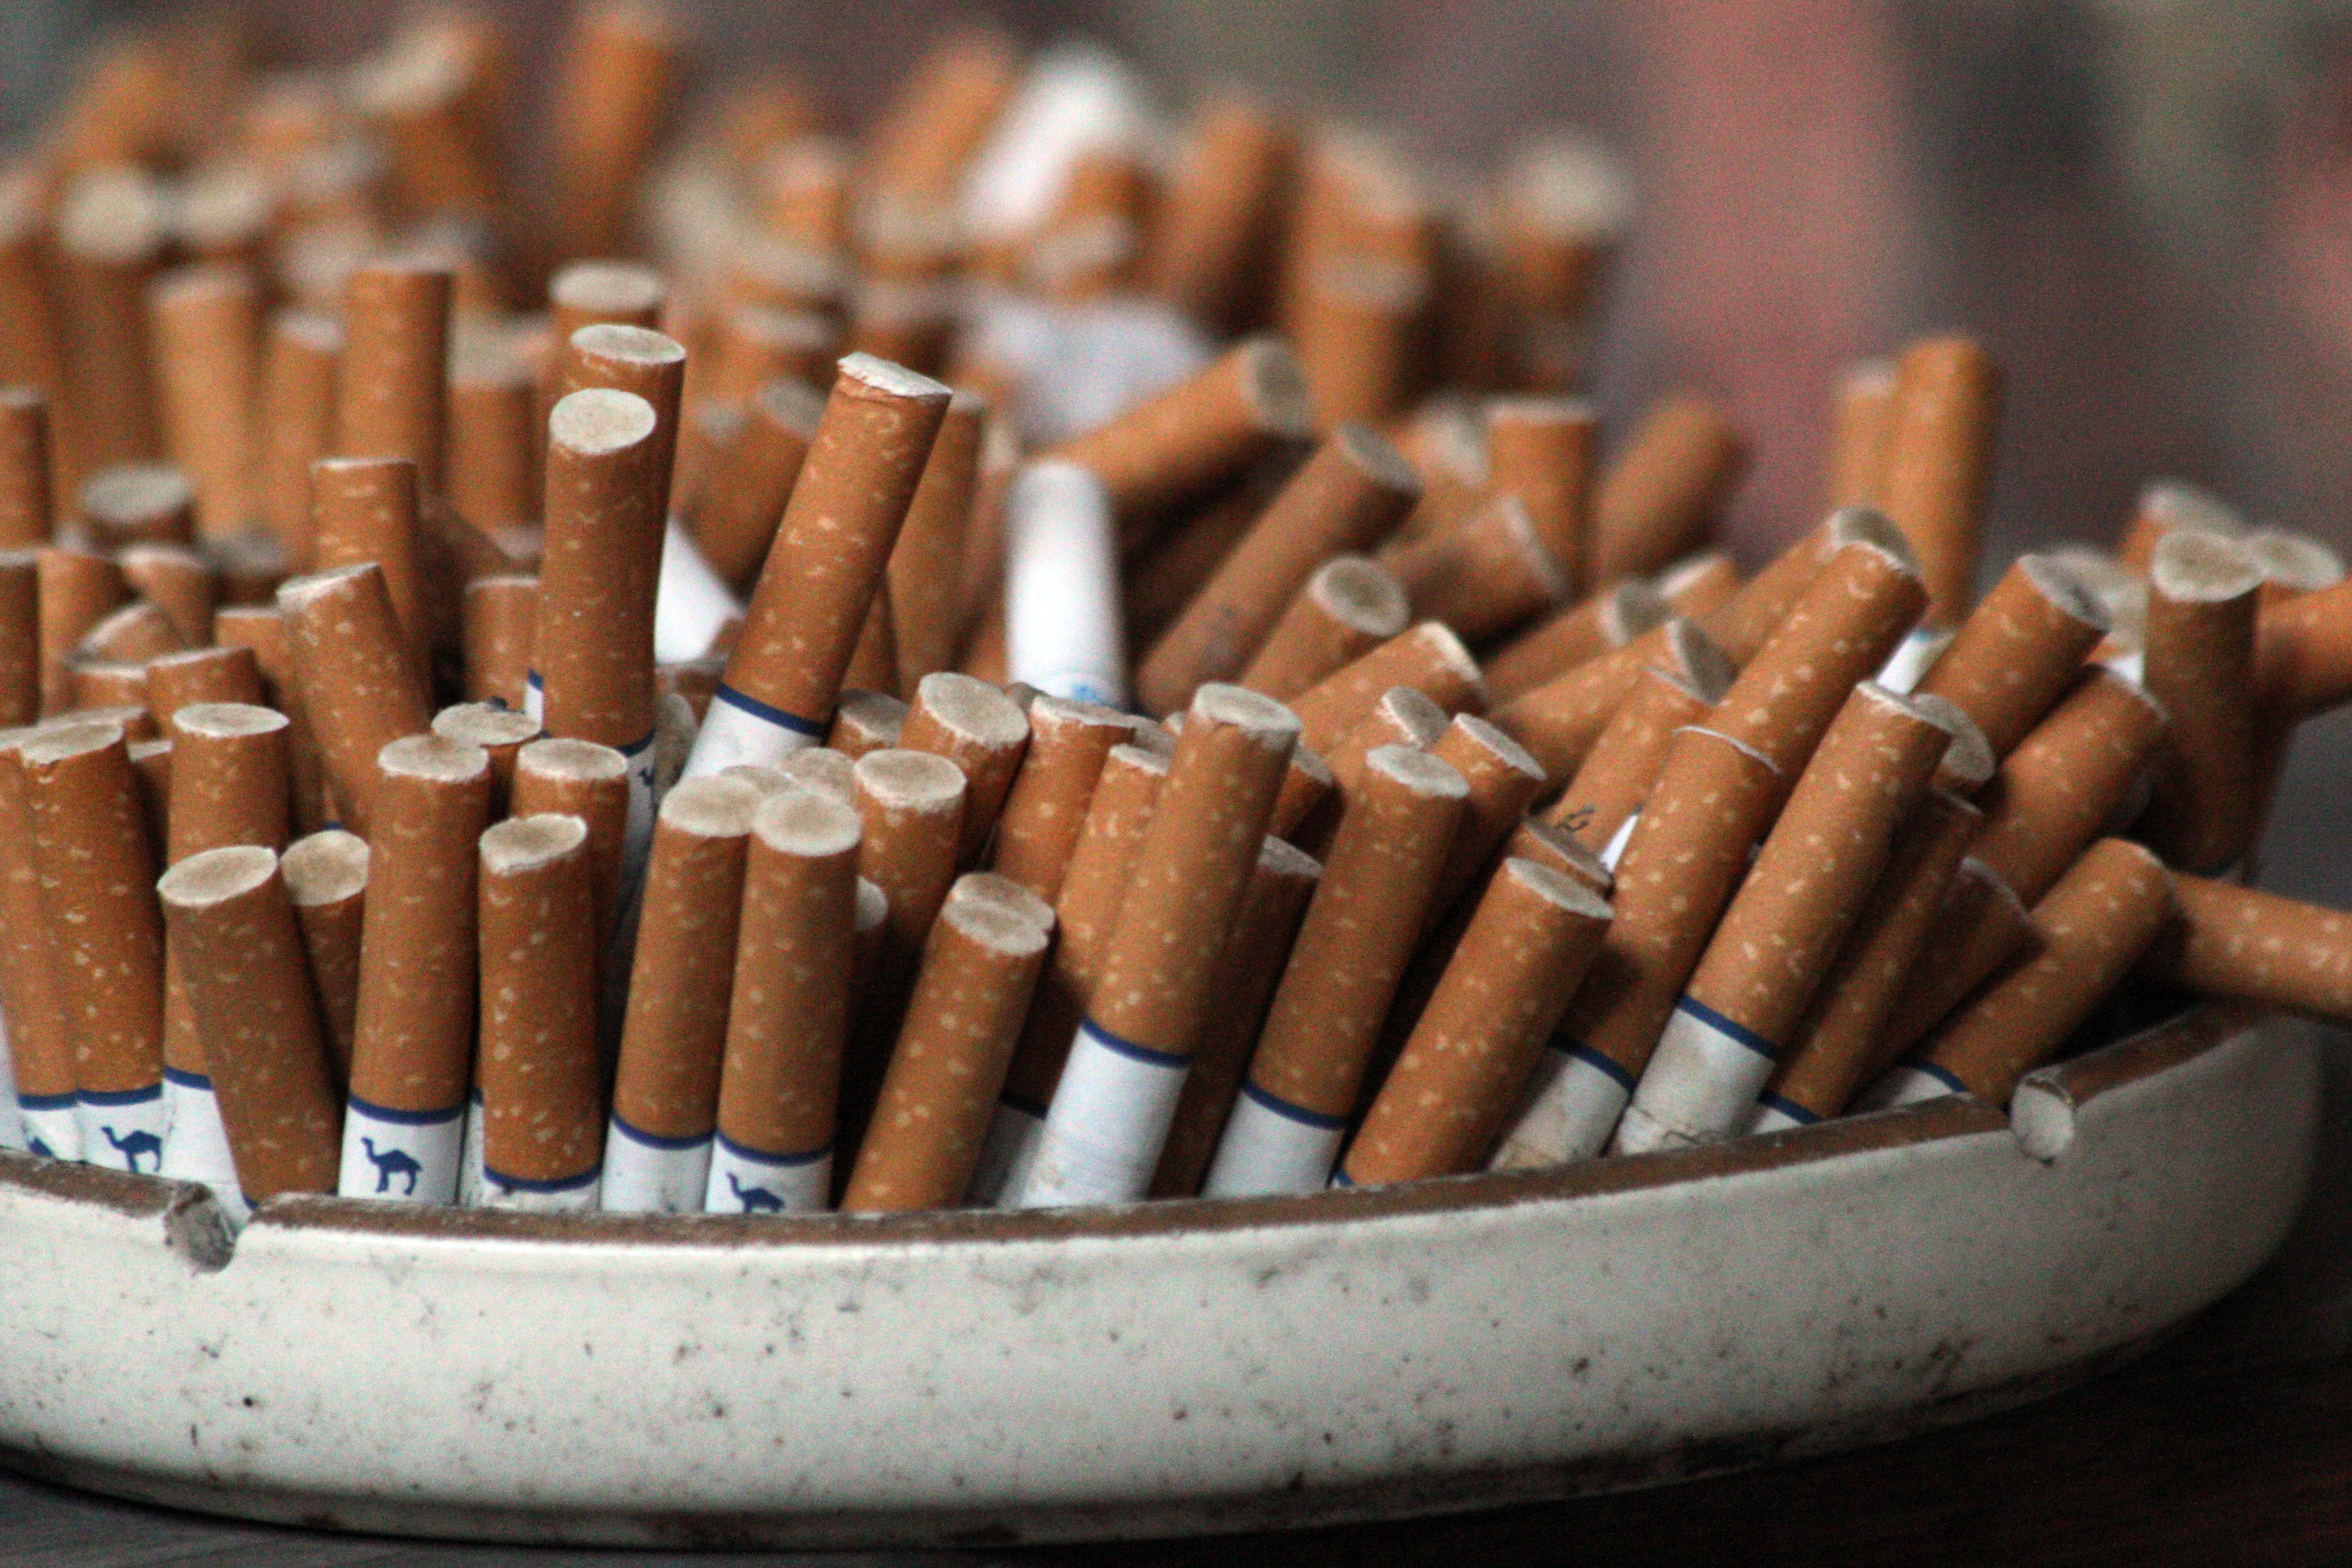 Recycling Cigarette Butts | A Moment of Science - Indiana Public Media